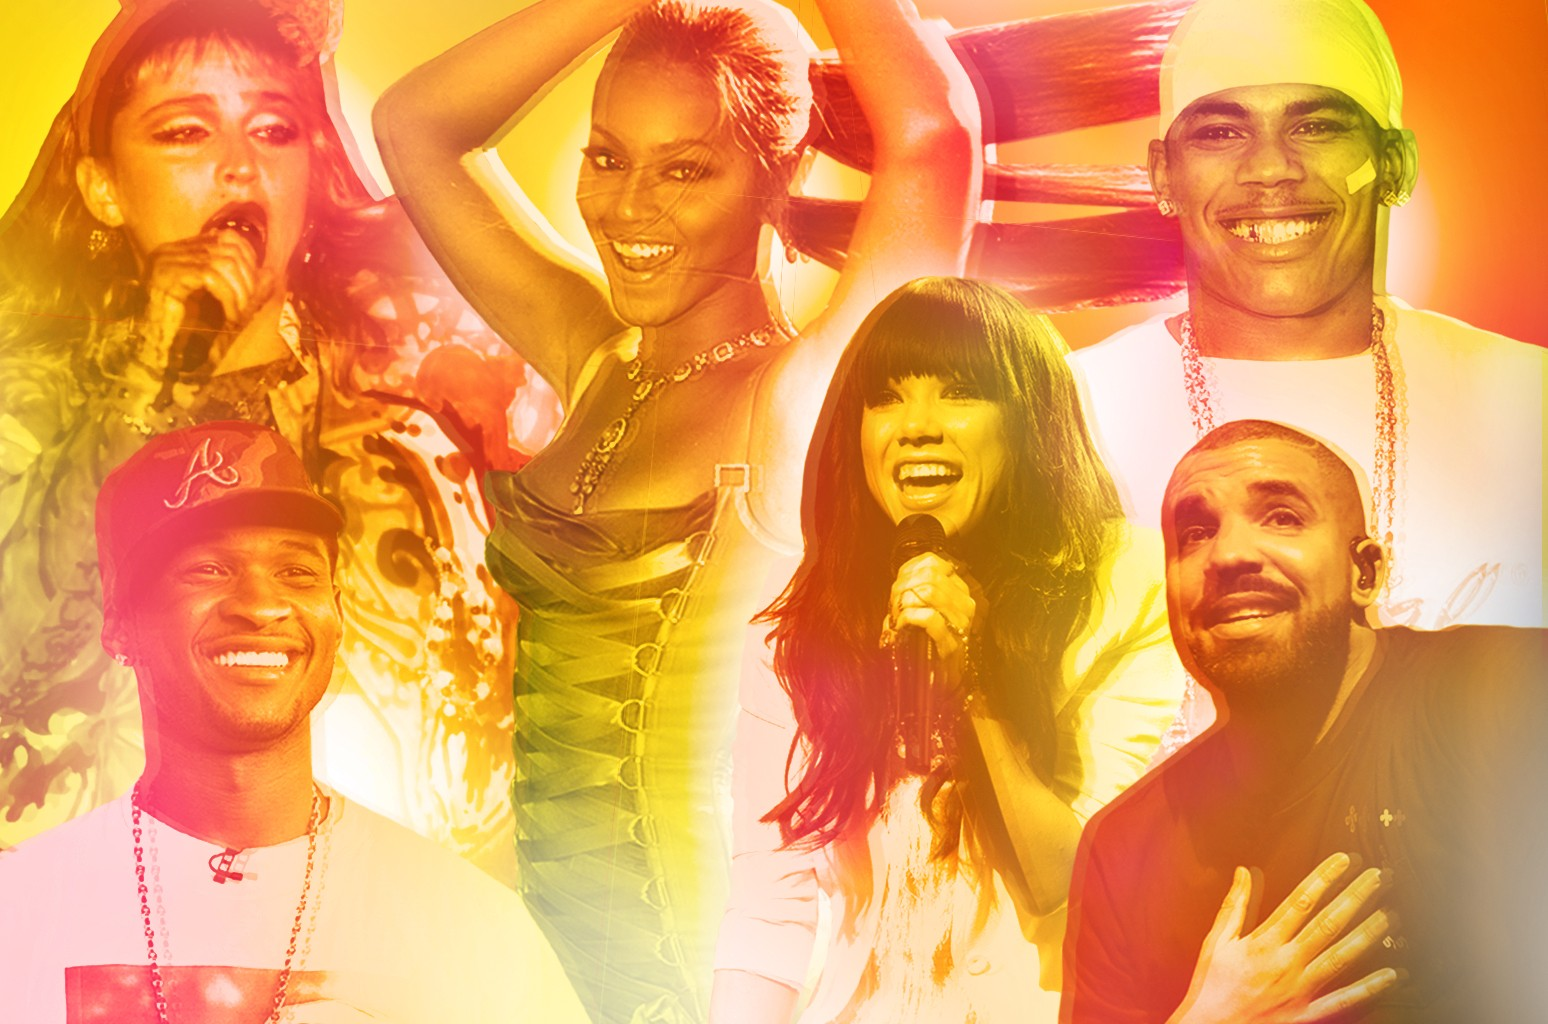 Clockwise from top left: Madonna, Beyonce, Nelly, Drake, Carly Rae Jepsen & Usher